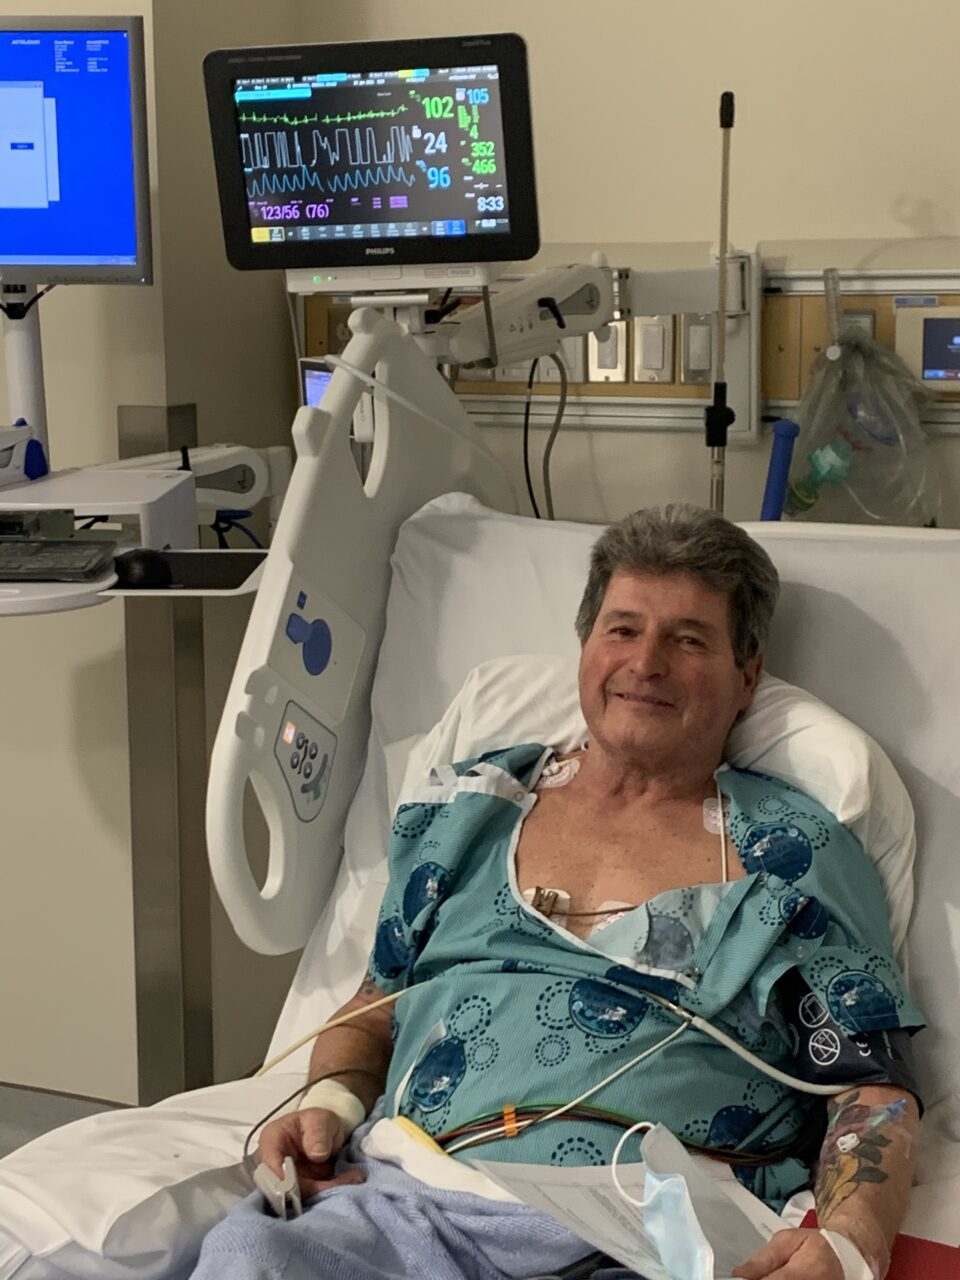 Orillia resident benefits from advanced cardiac care partnership between OSMH and RVH